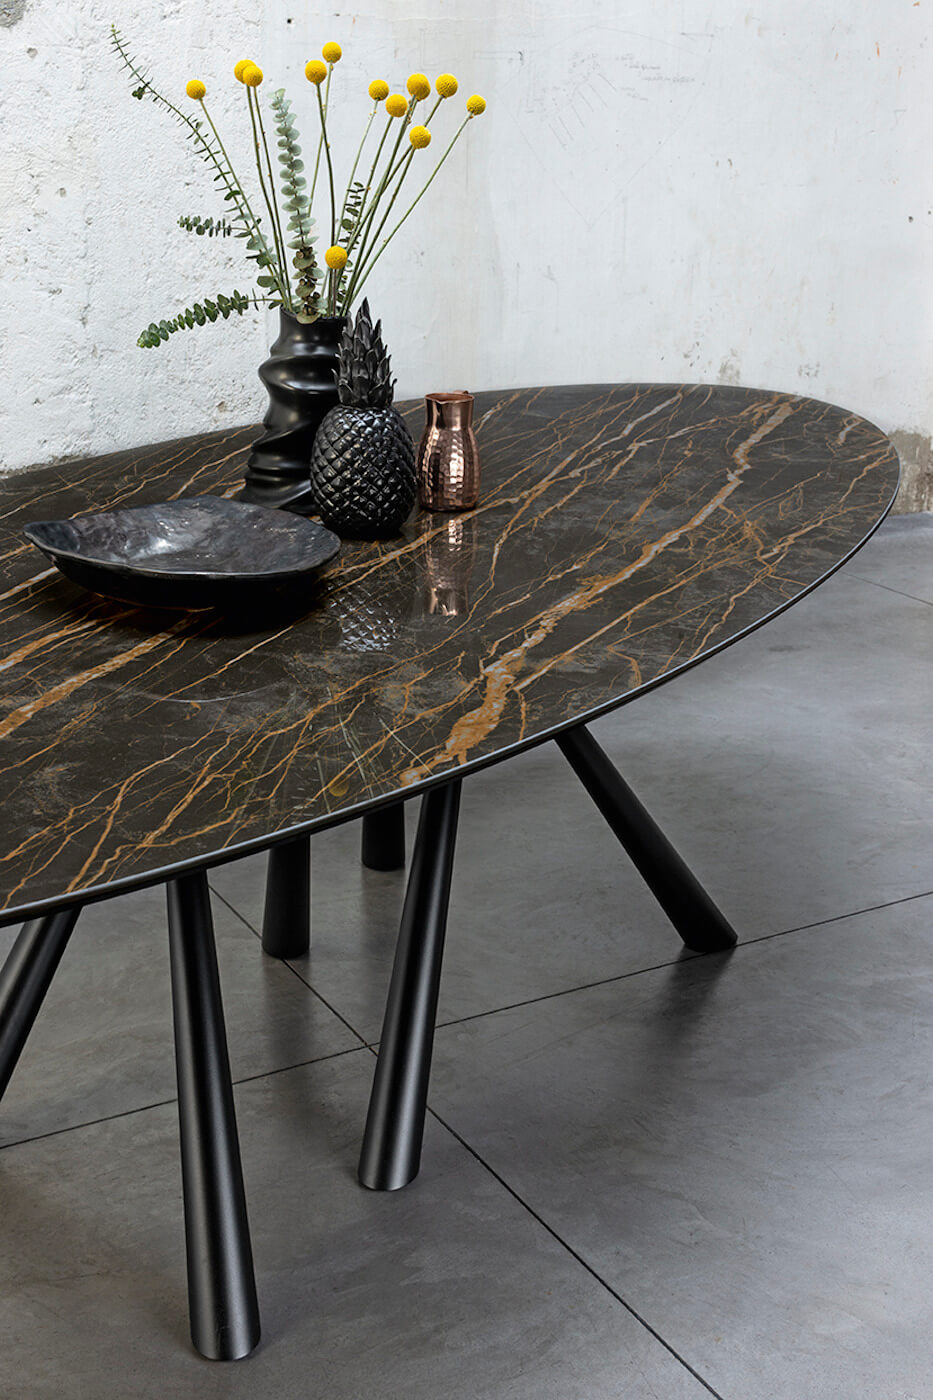 Detail of the oval top in crystalceramic with marble noir desir effect